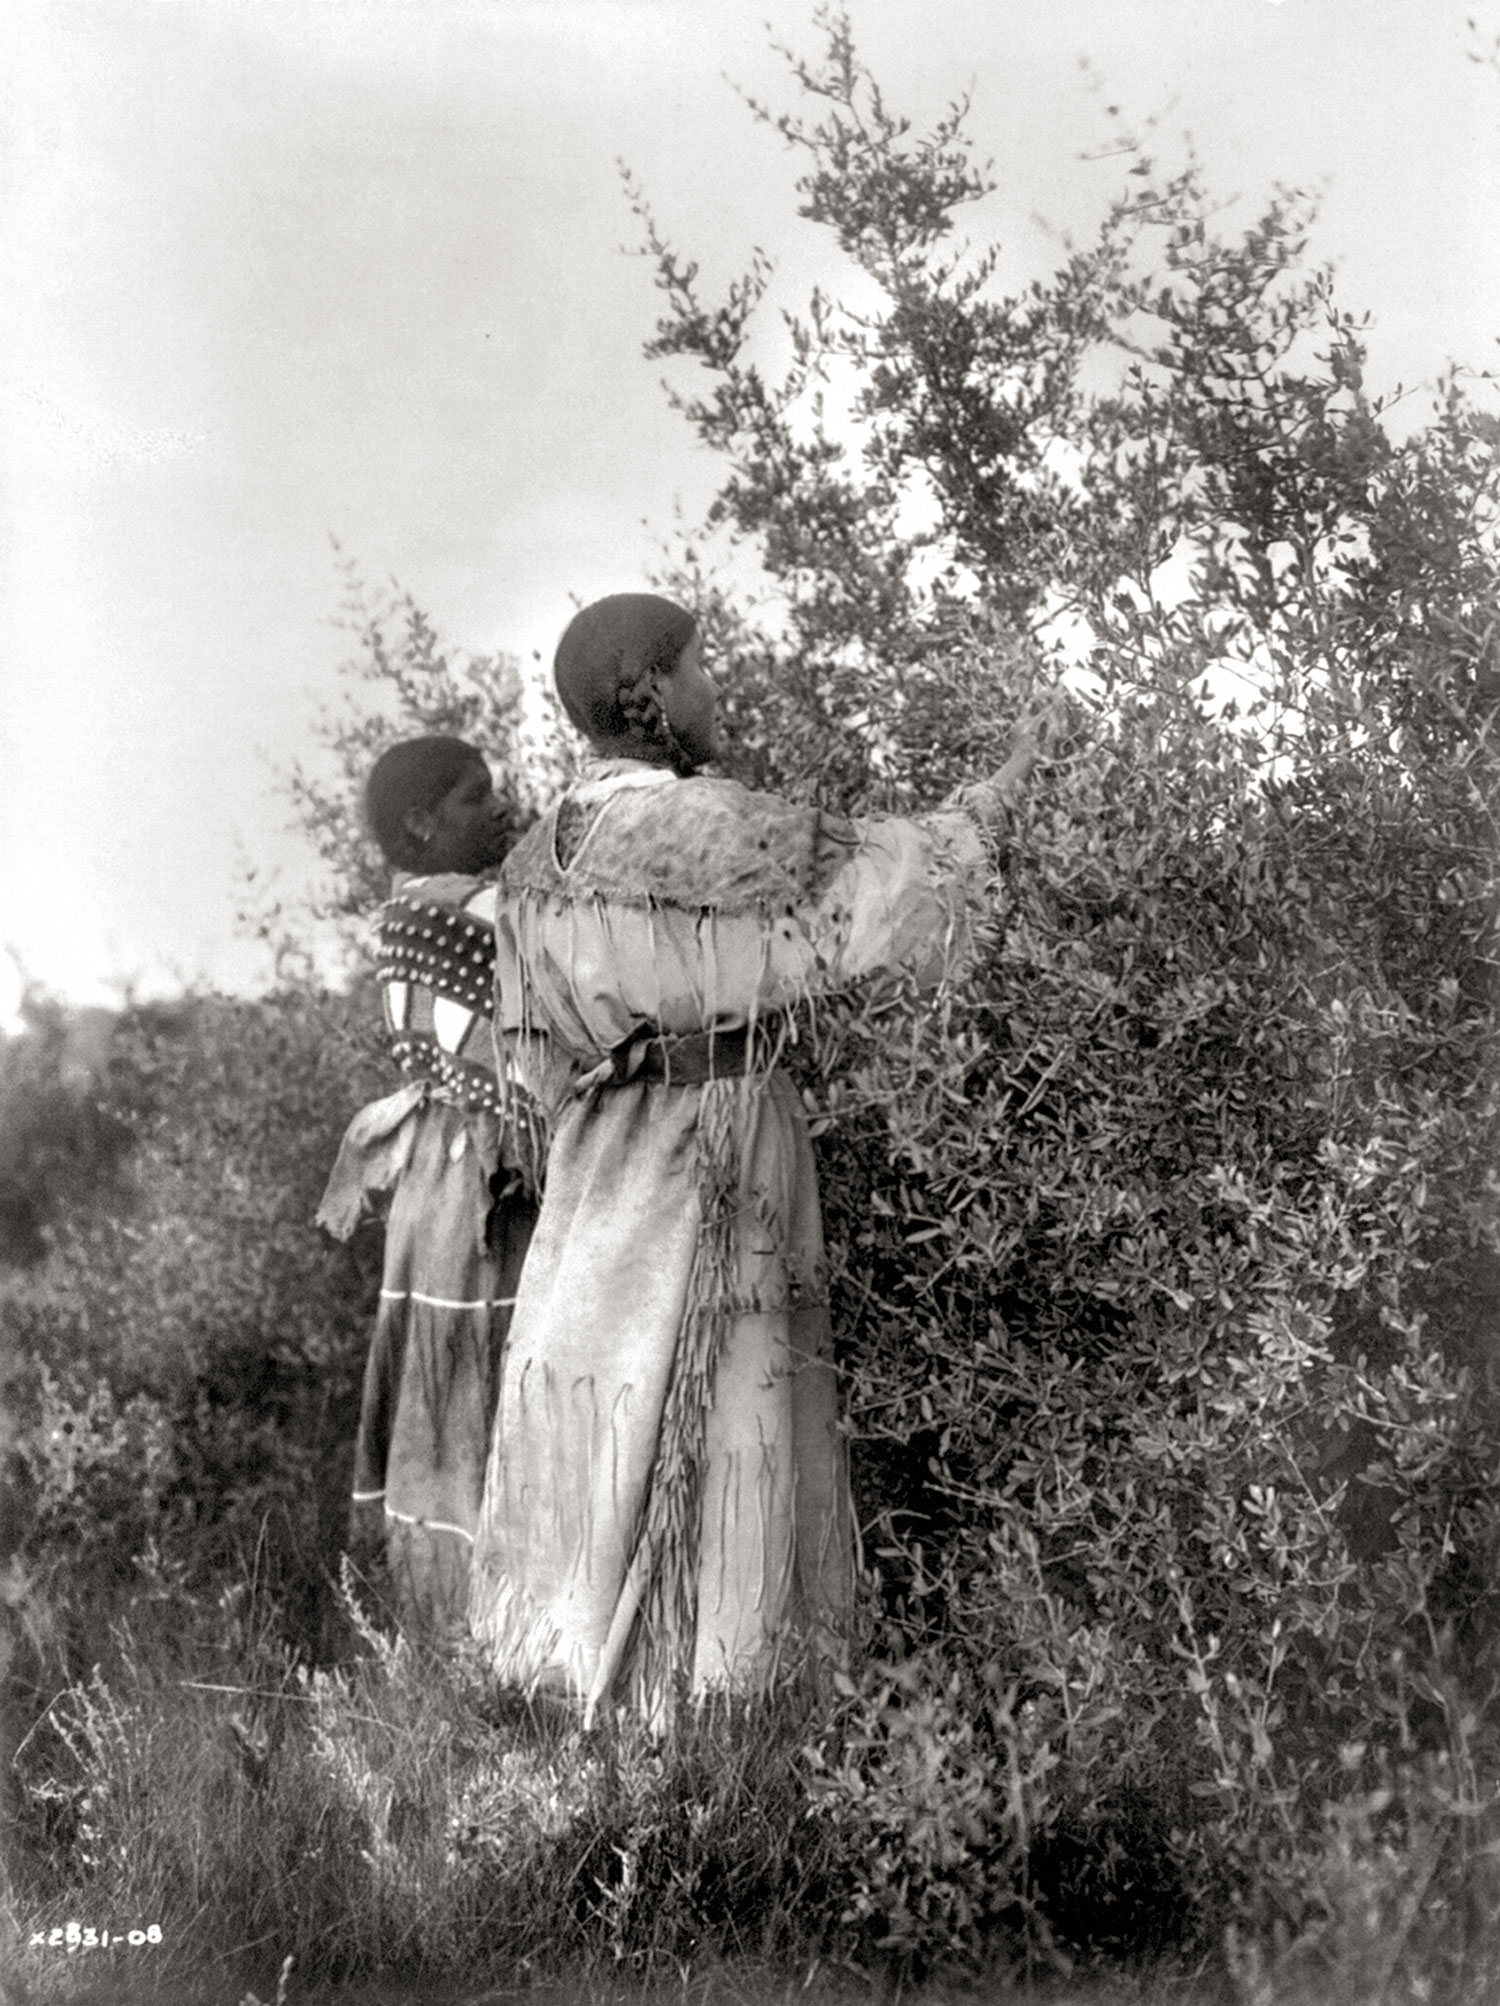 Mandans-gathering-buffalo-berries-1908.-Photograph-by-Edward-S.-Curtis